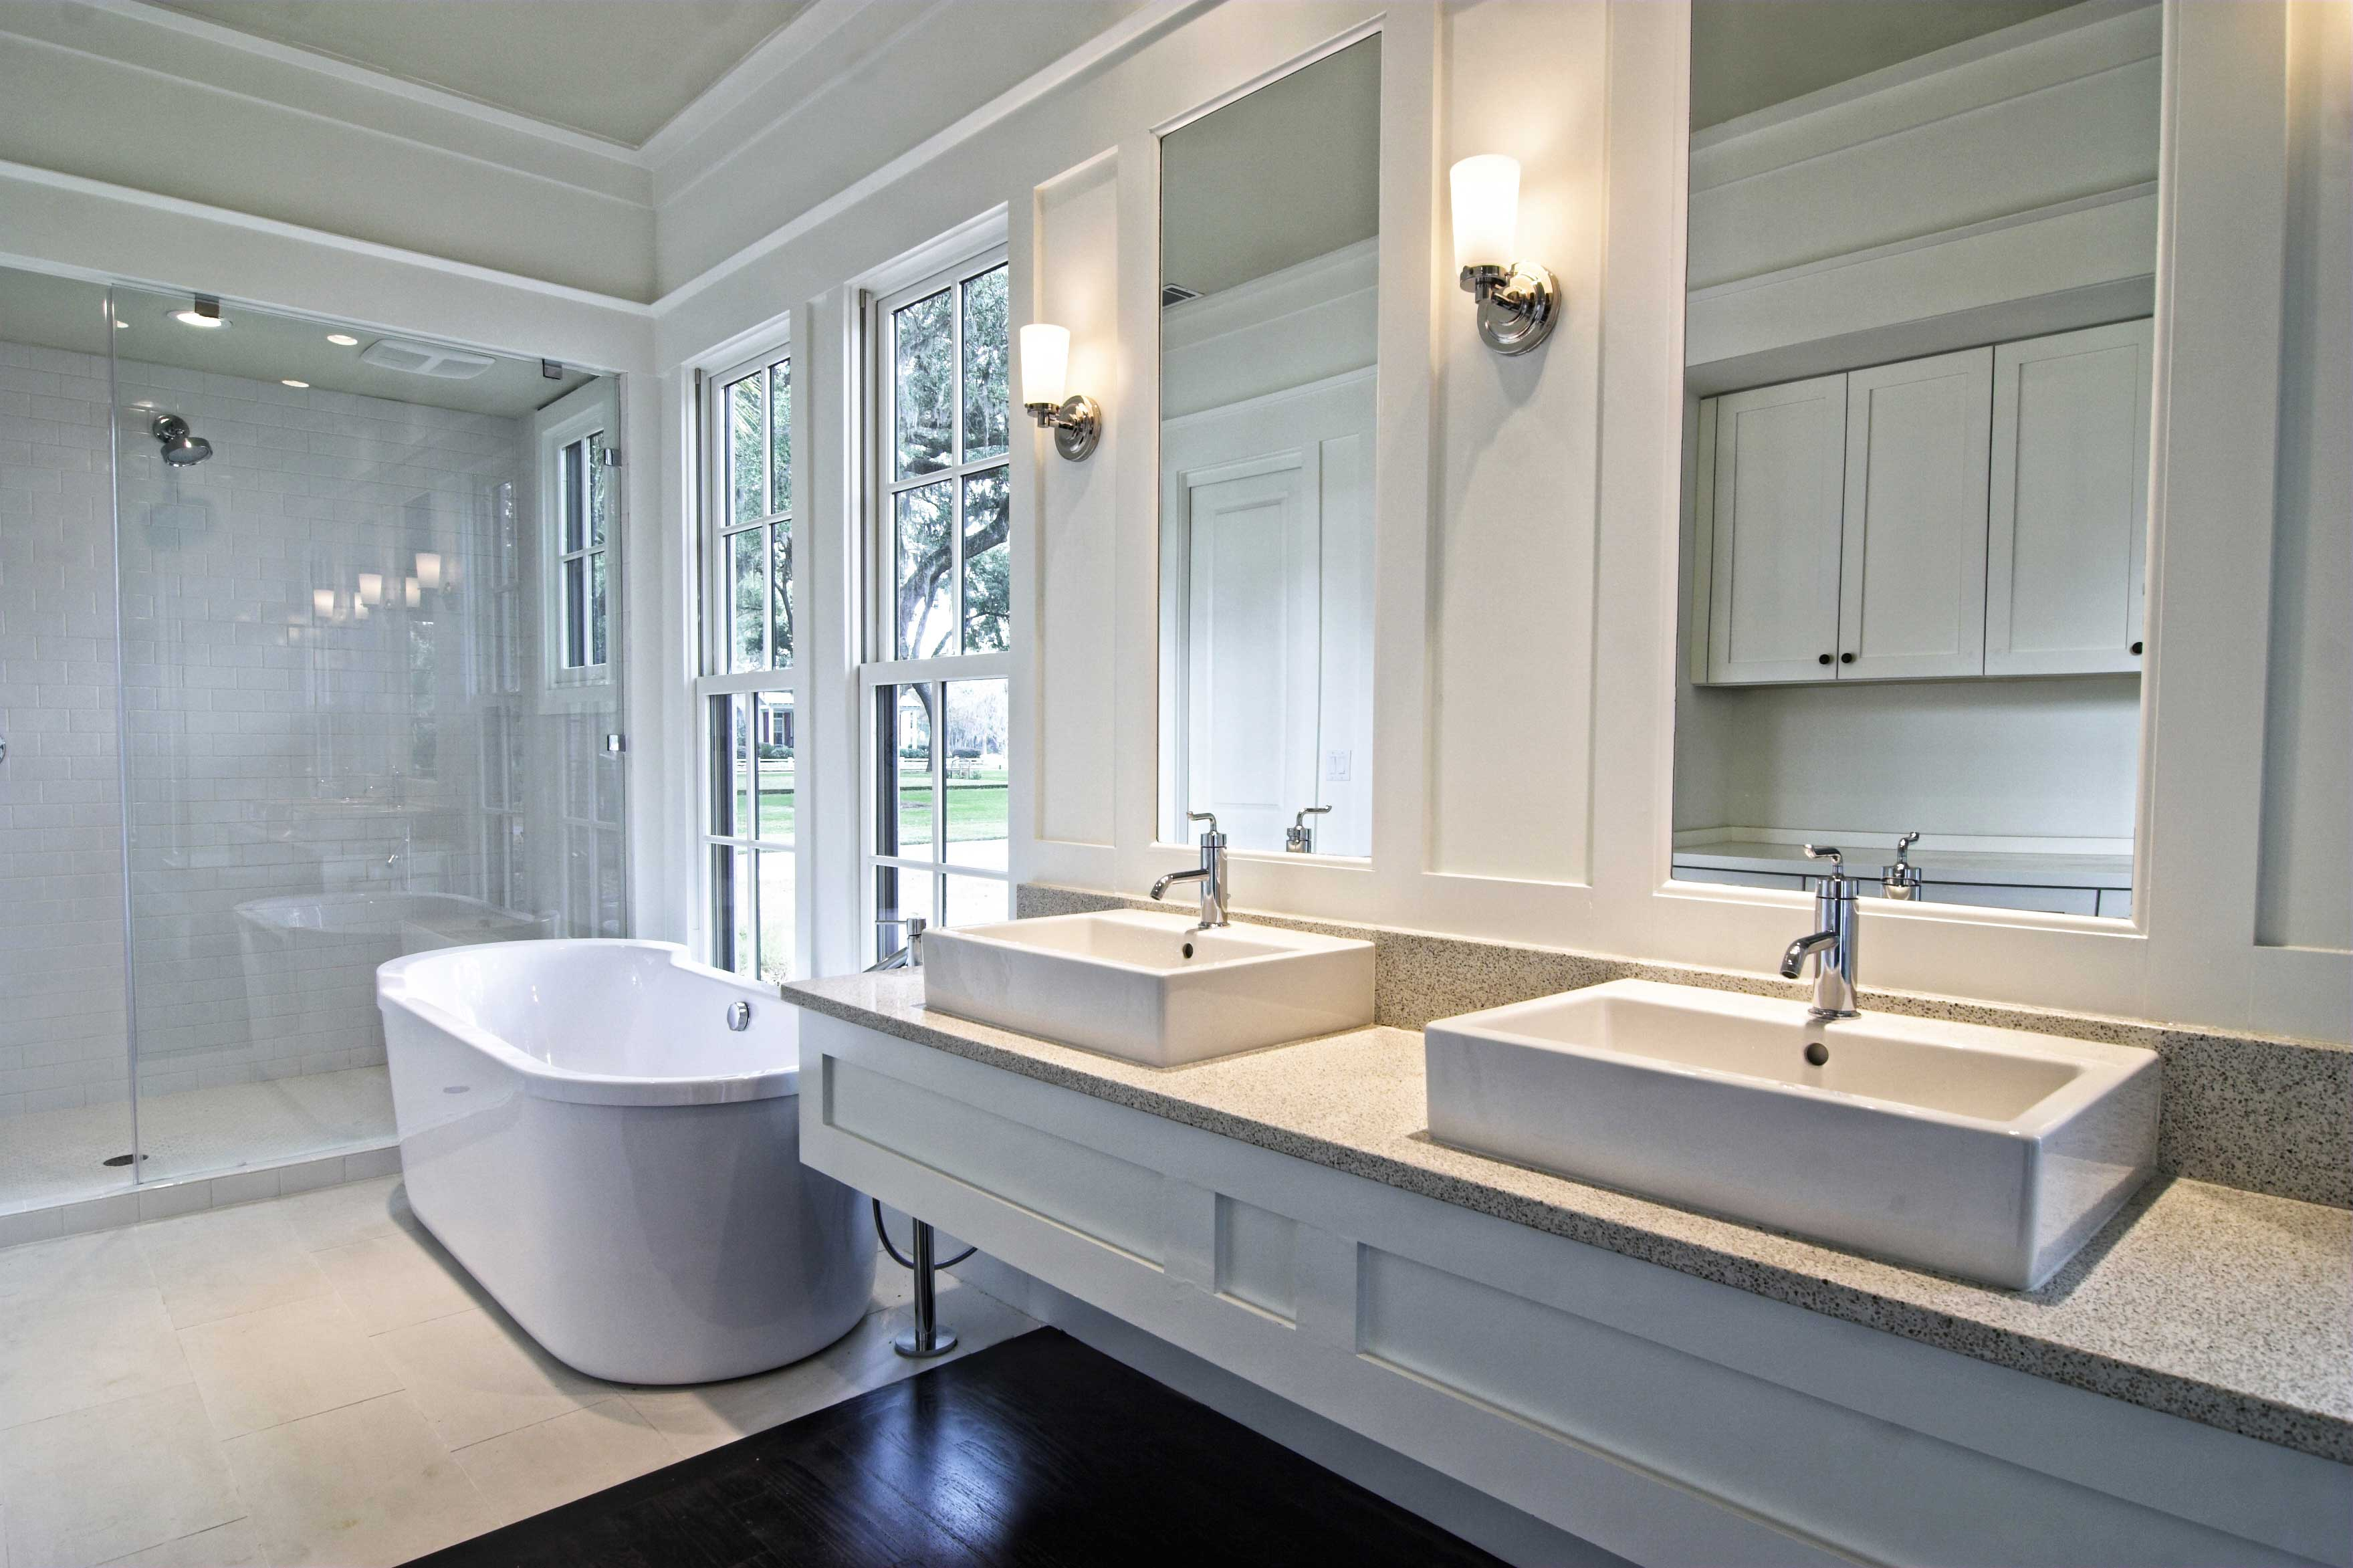 Home - Apex Plumbing LLC - New Construction Residential, Water ...